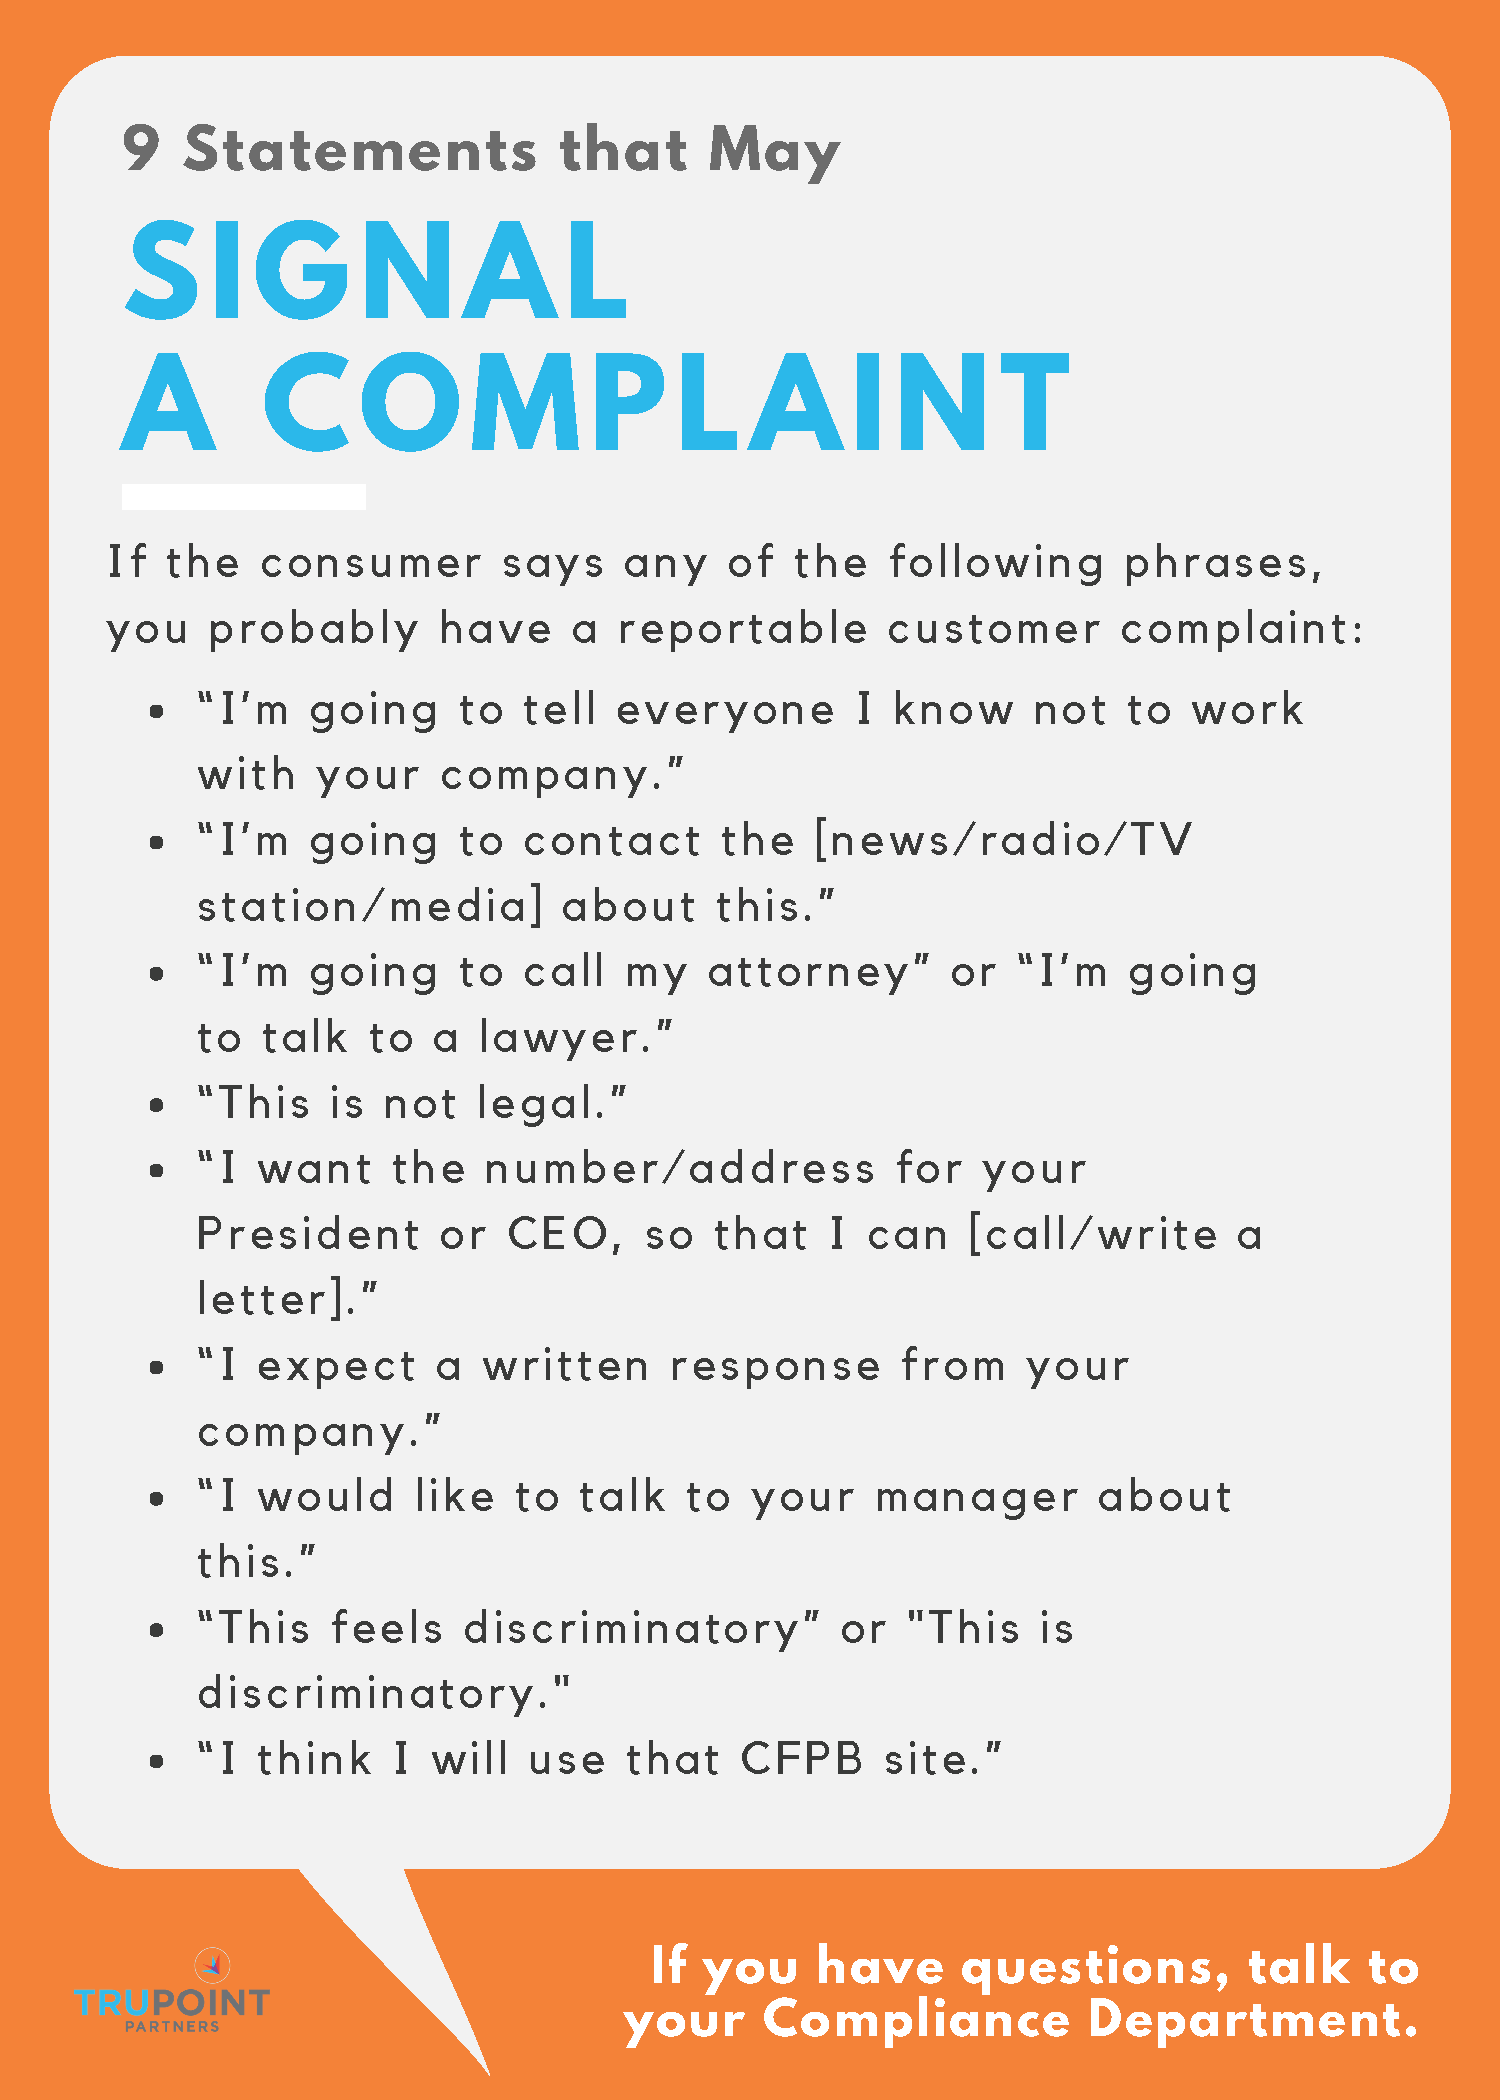 9 Statements that May Signal a Consumer Complaint - TRUPOINT